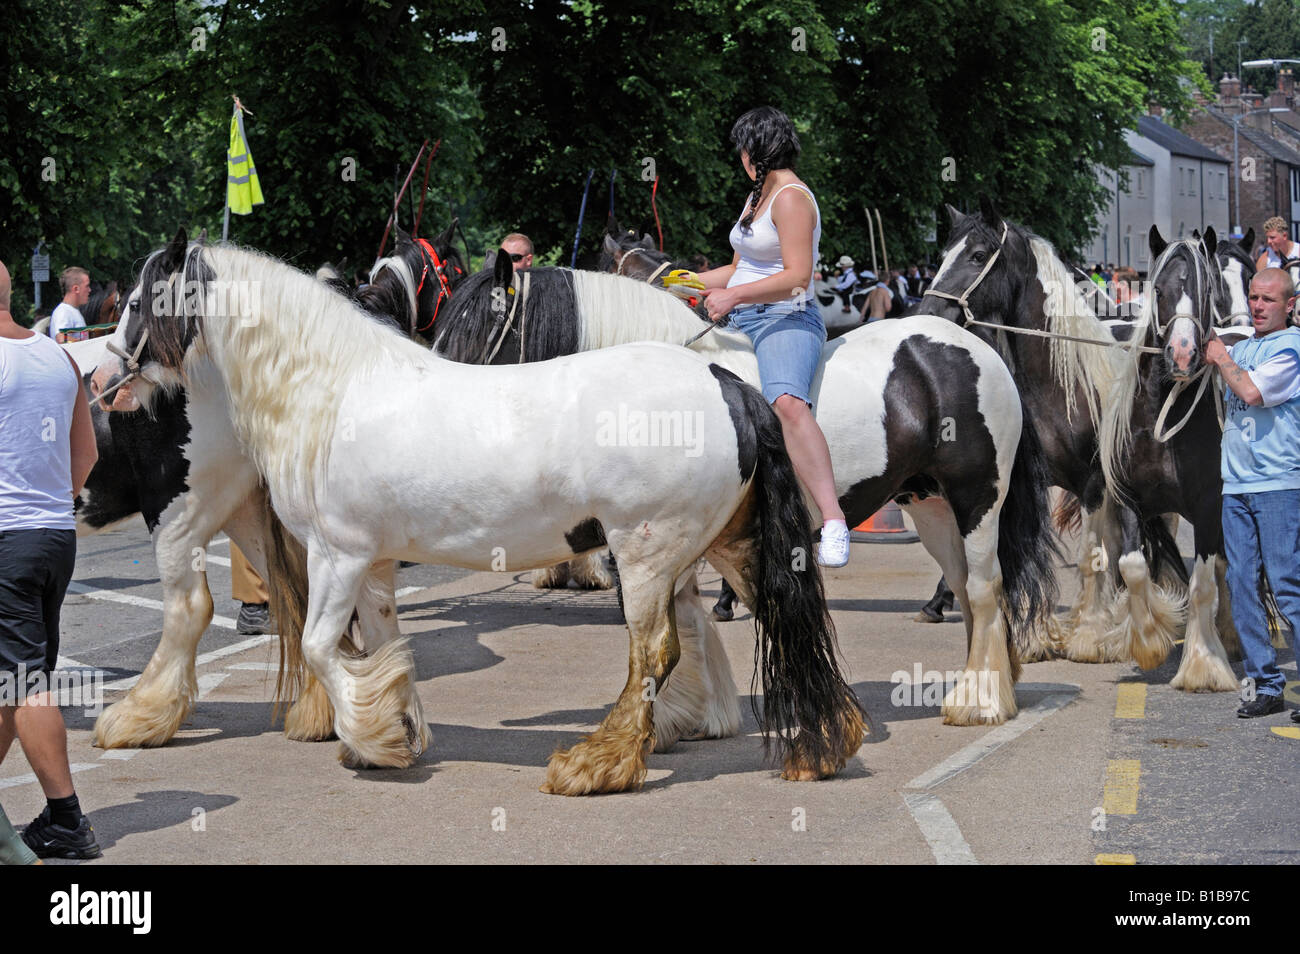 Gypsy travellers at Appleby Horse Fair. Appleby-in-Westmorland, Cumbria, England, United Kingdom, Europe. Stock Photo